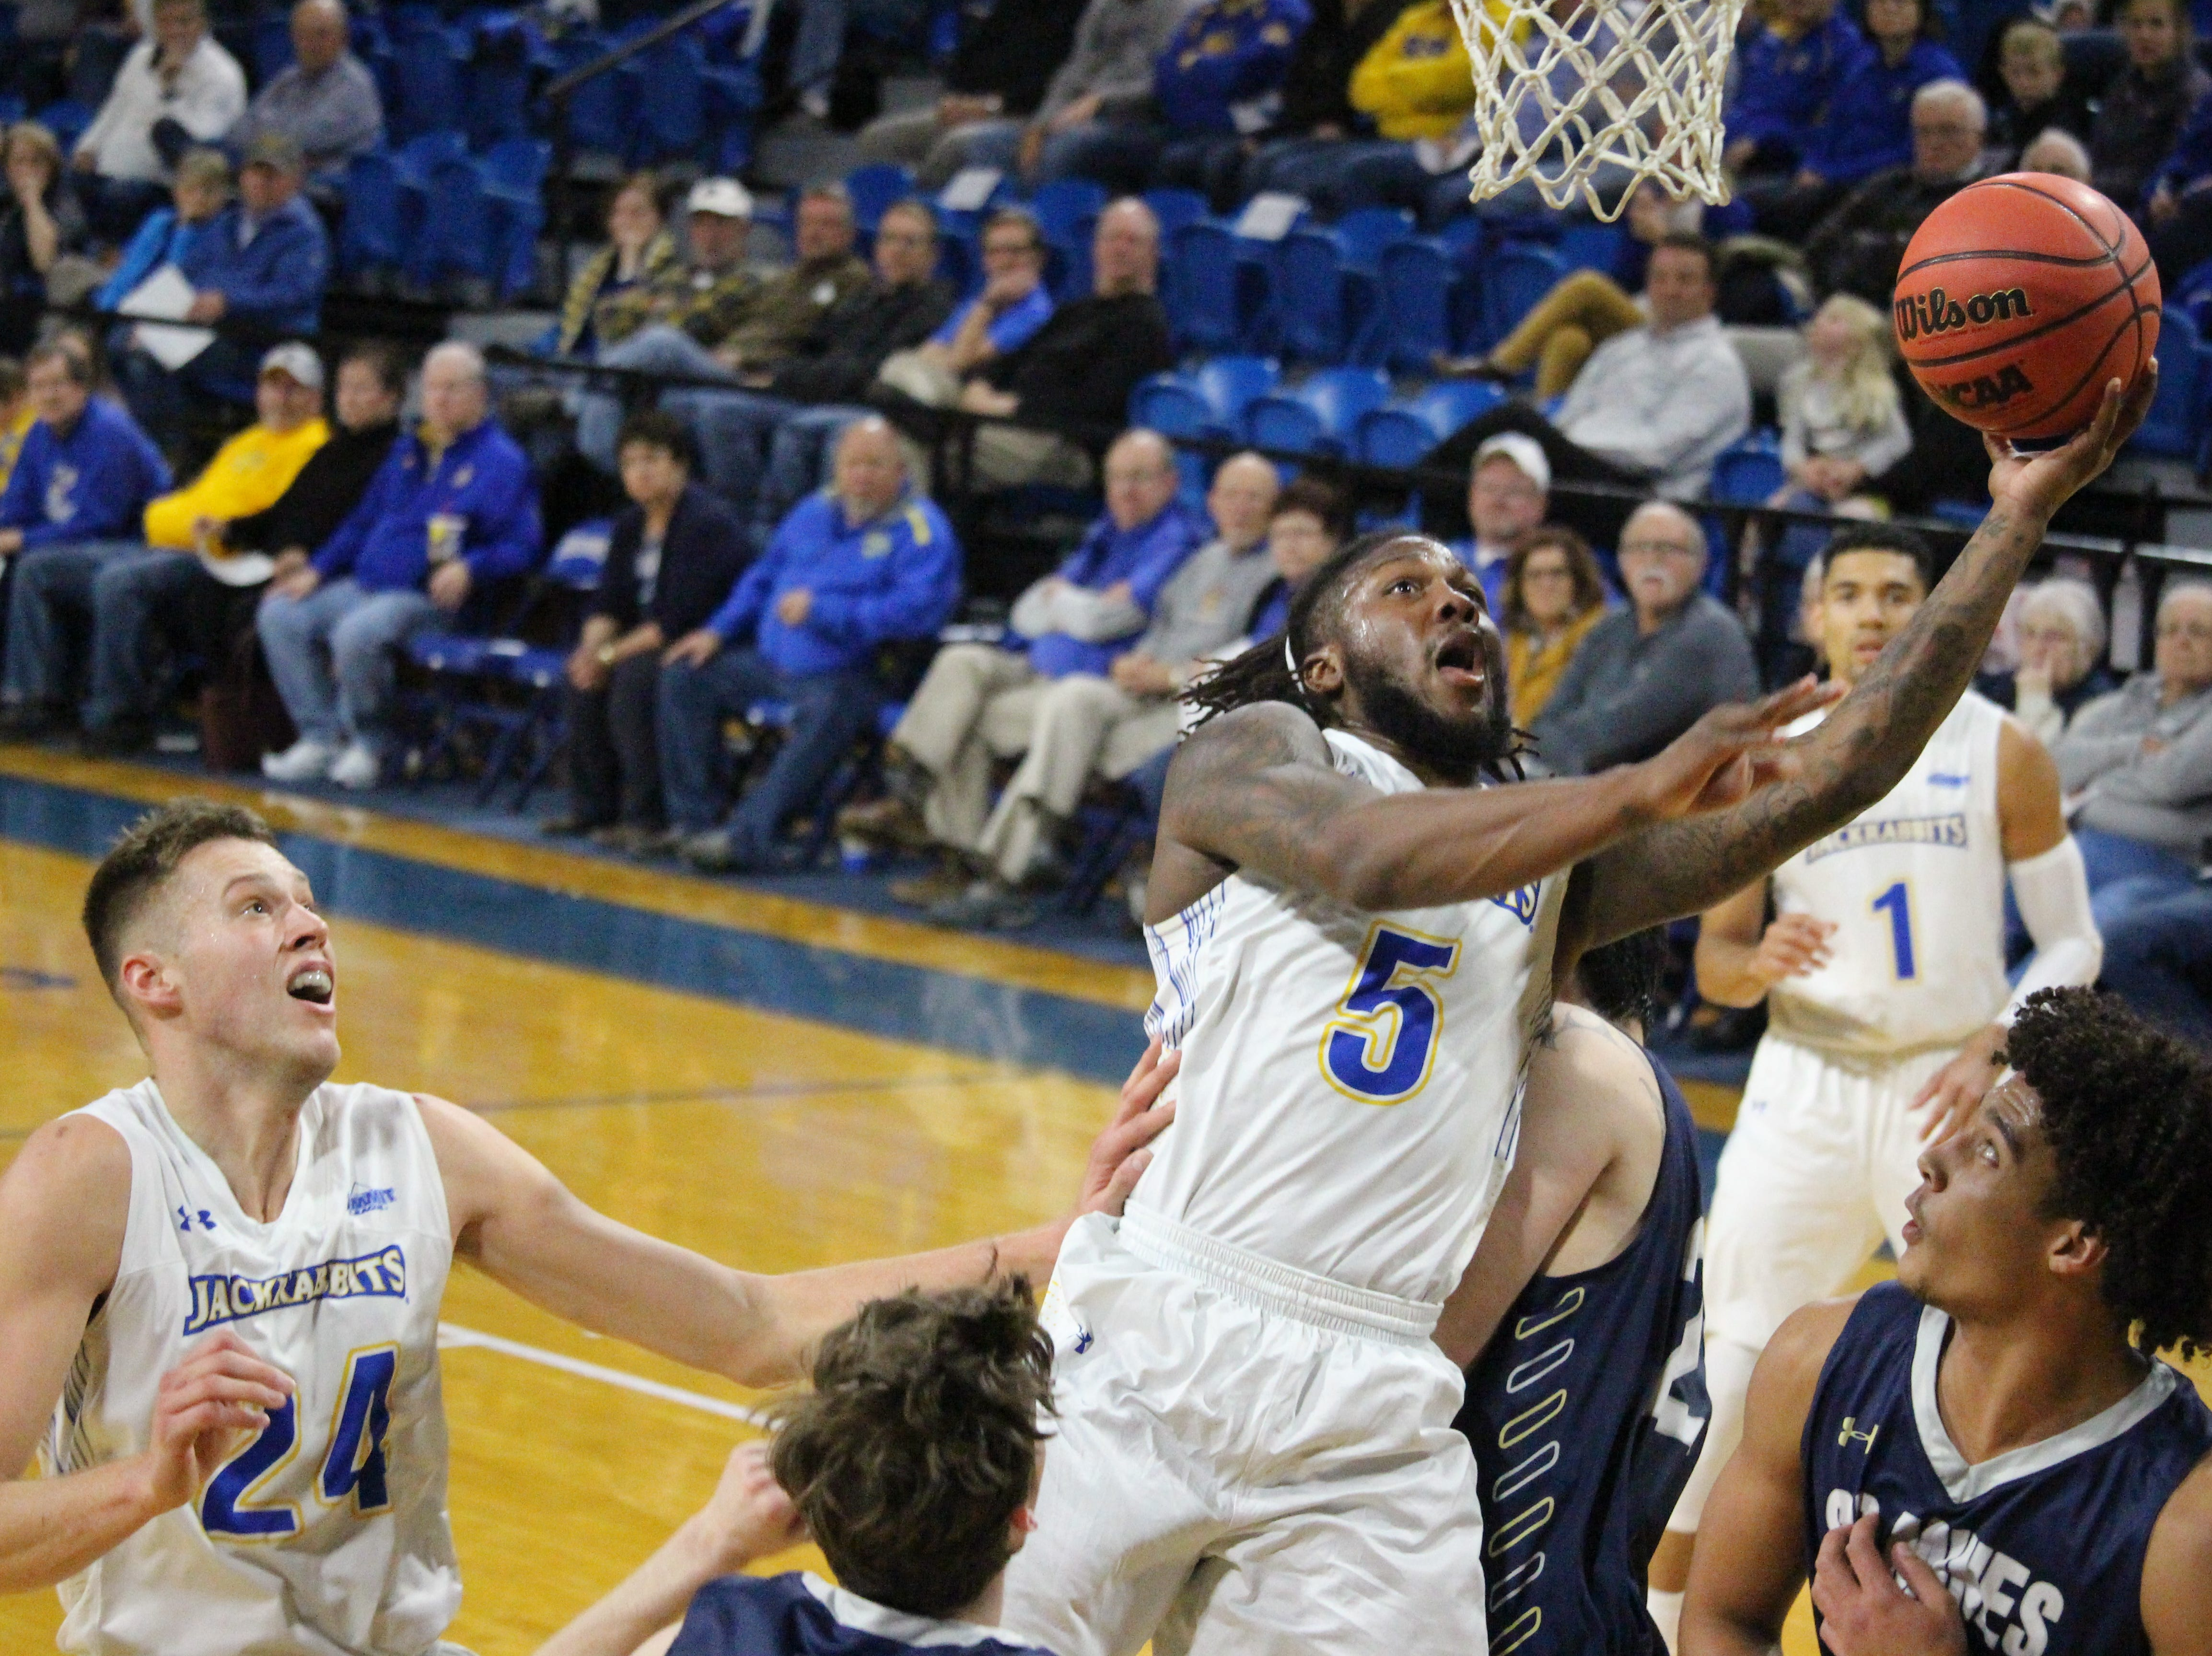 SDSU's David Jenkins takes it to the basket Thursday night against South Dakota Mines & Technology at Frost Arena